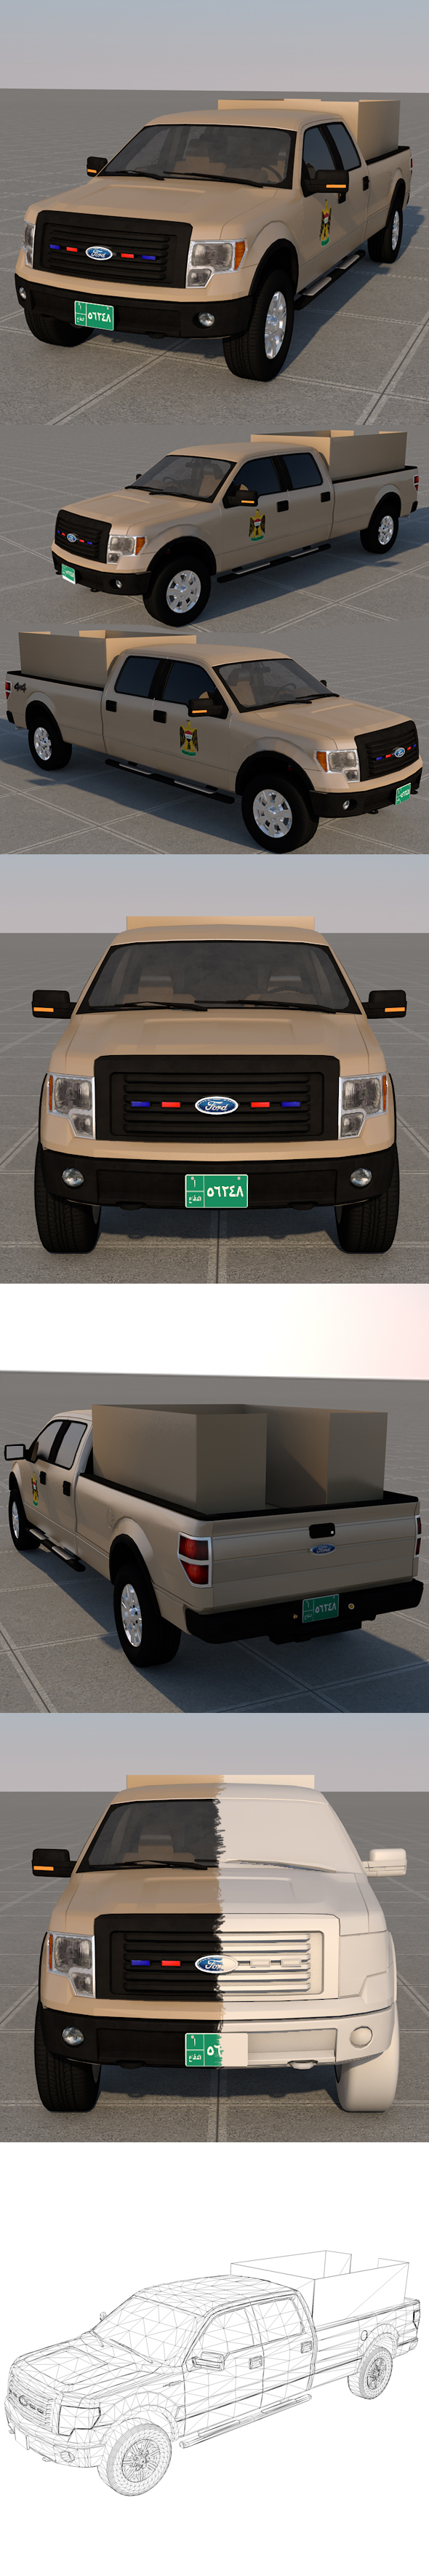 Ford F-150 2011 - Army Of the iraq [ FULL ] - 3DOcean Item for Sale